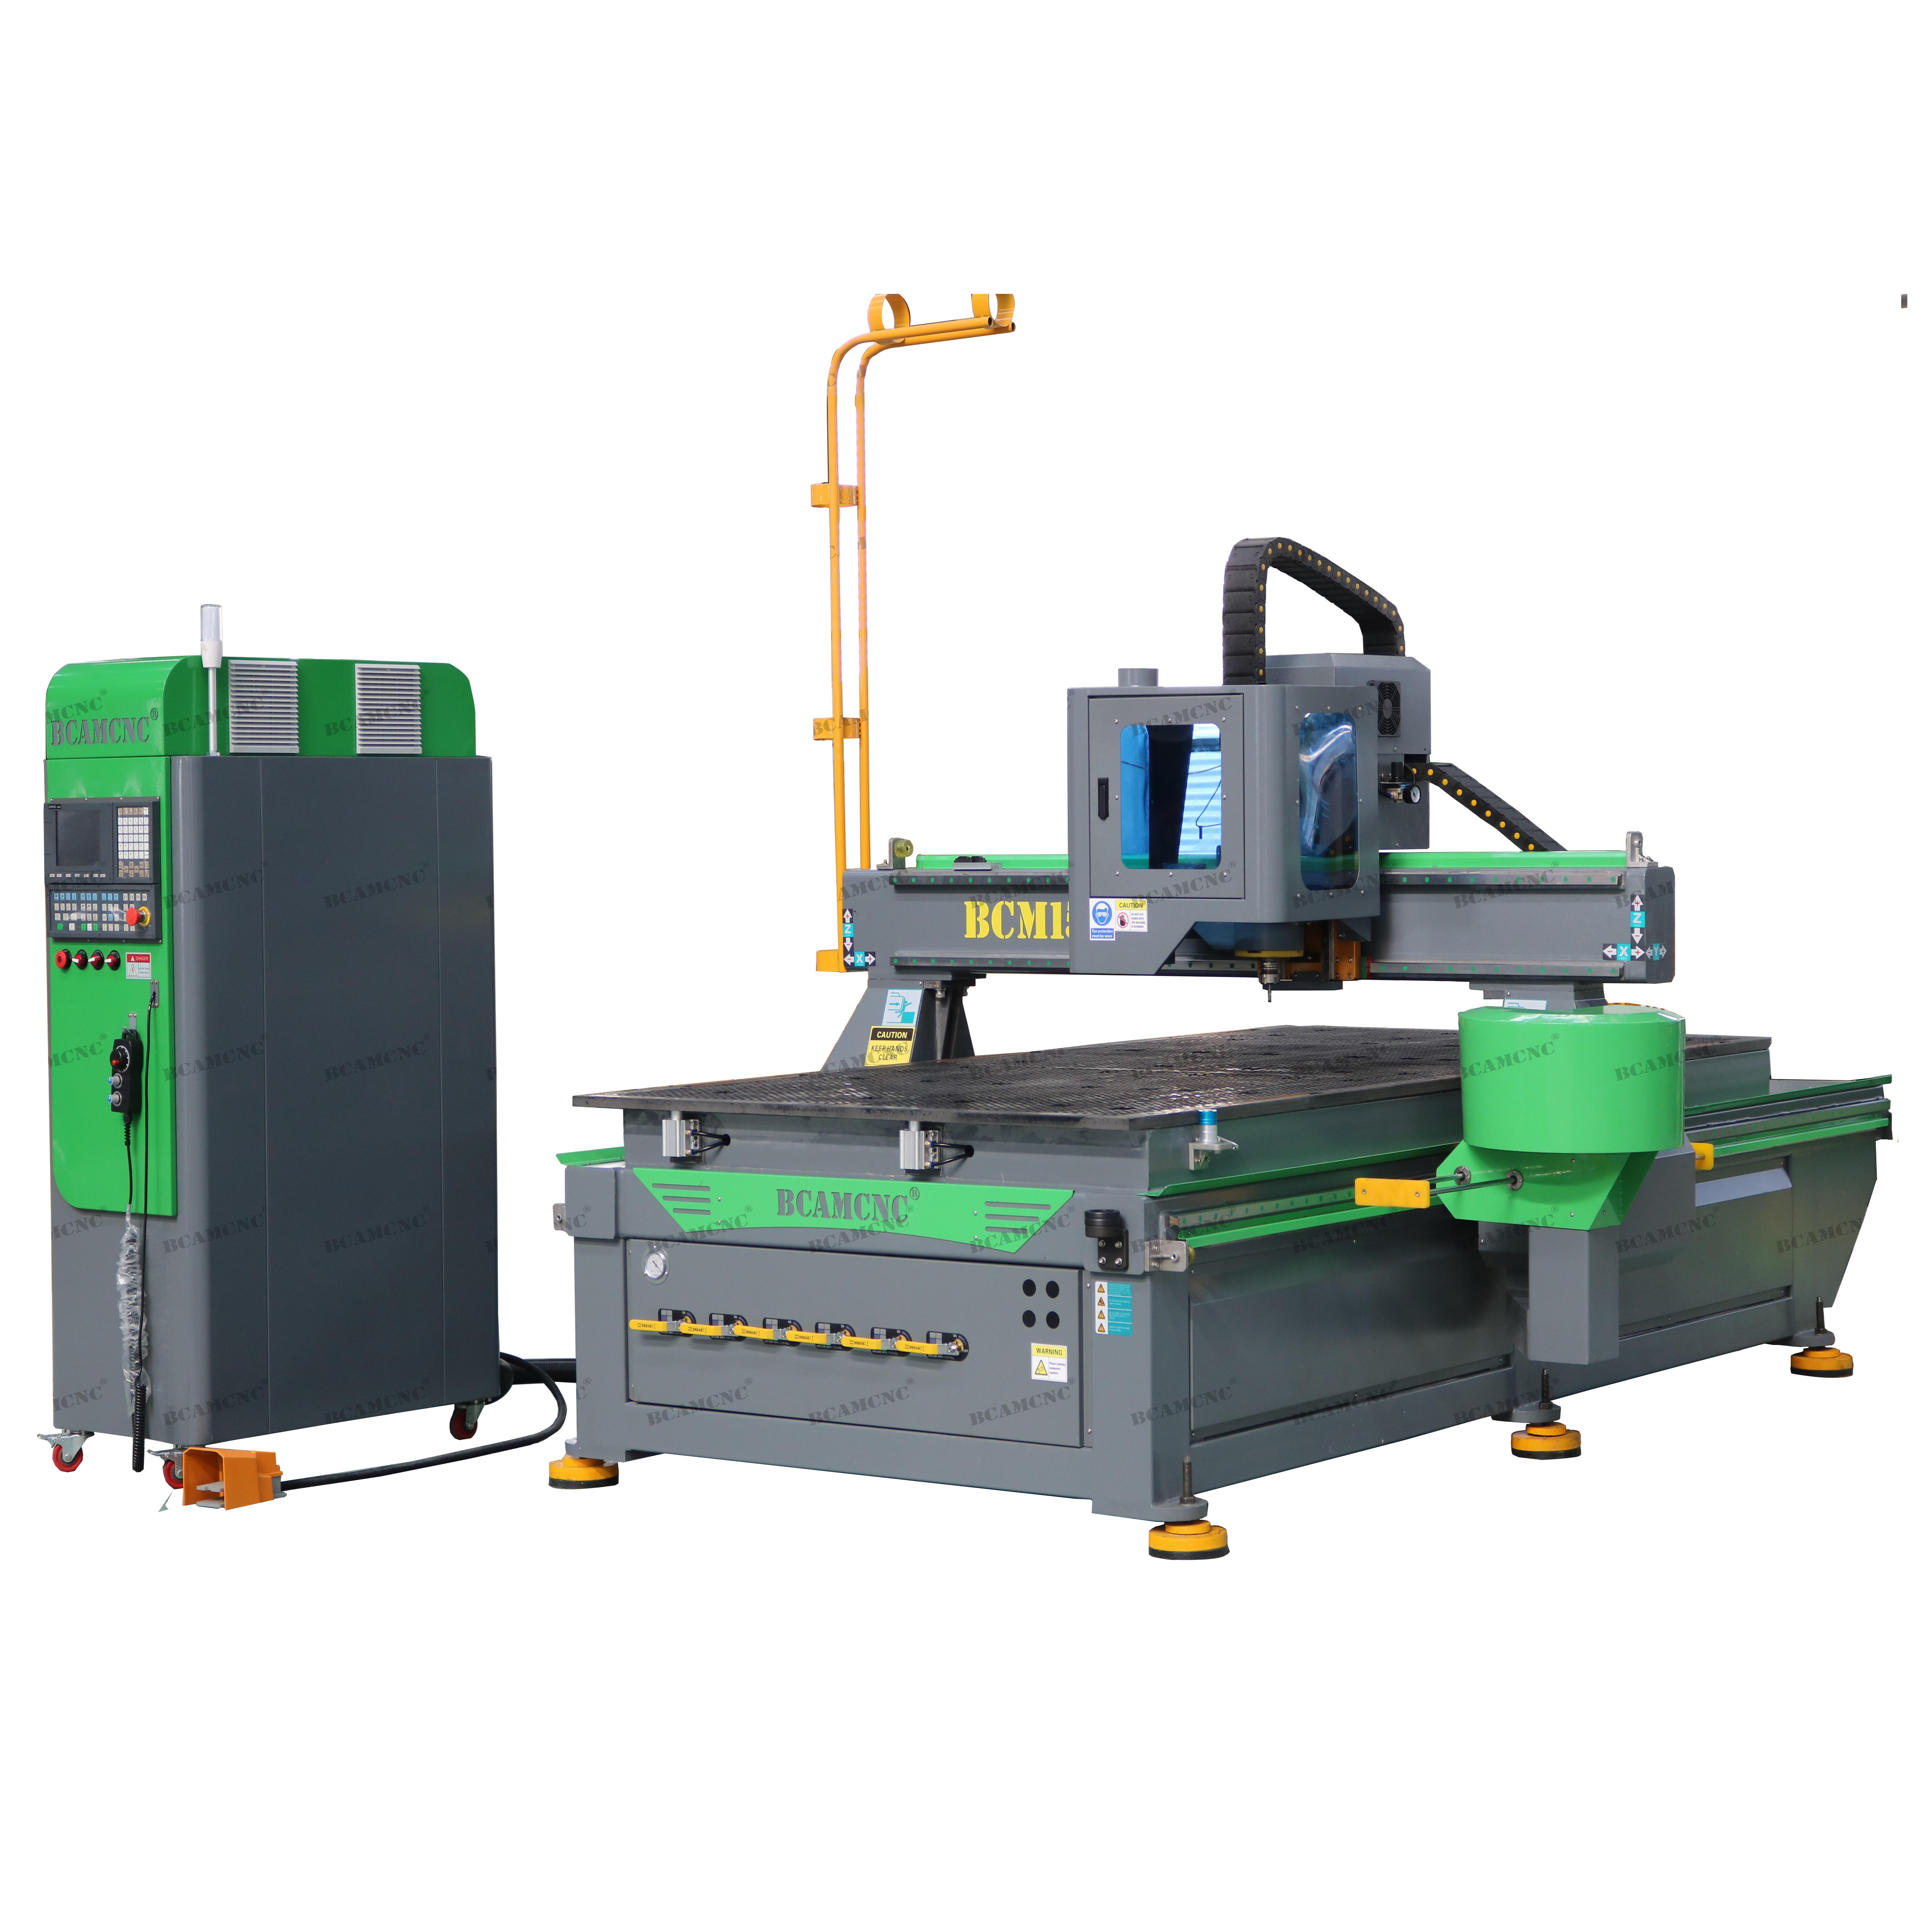 Three years warranty cnc router wood router, wood router 3D ATC wood CNC router machine, cnc machine